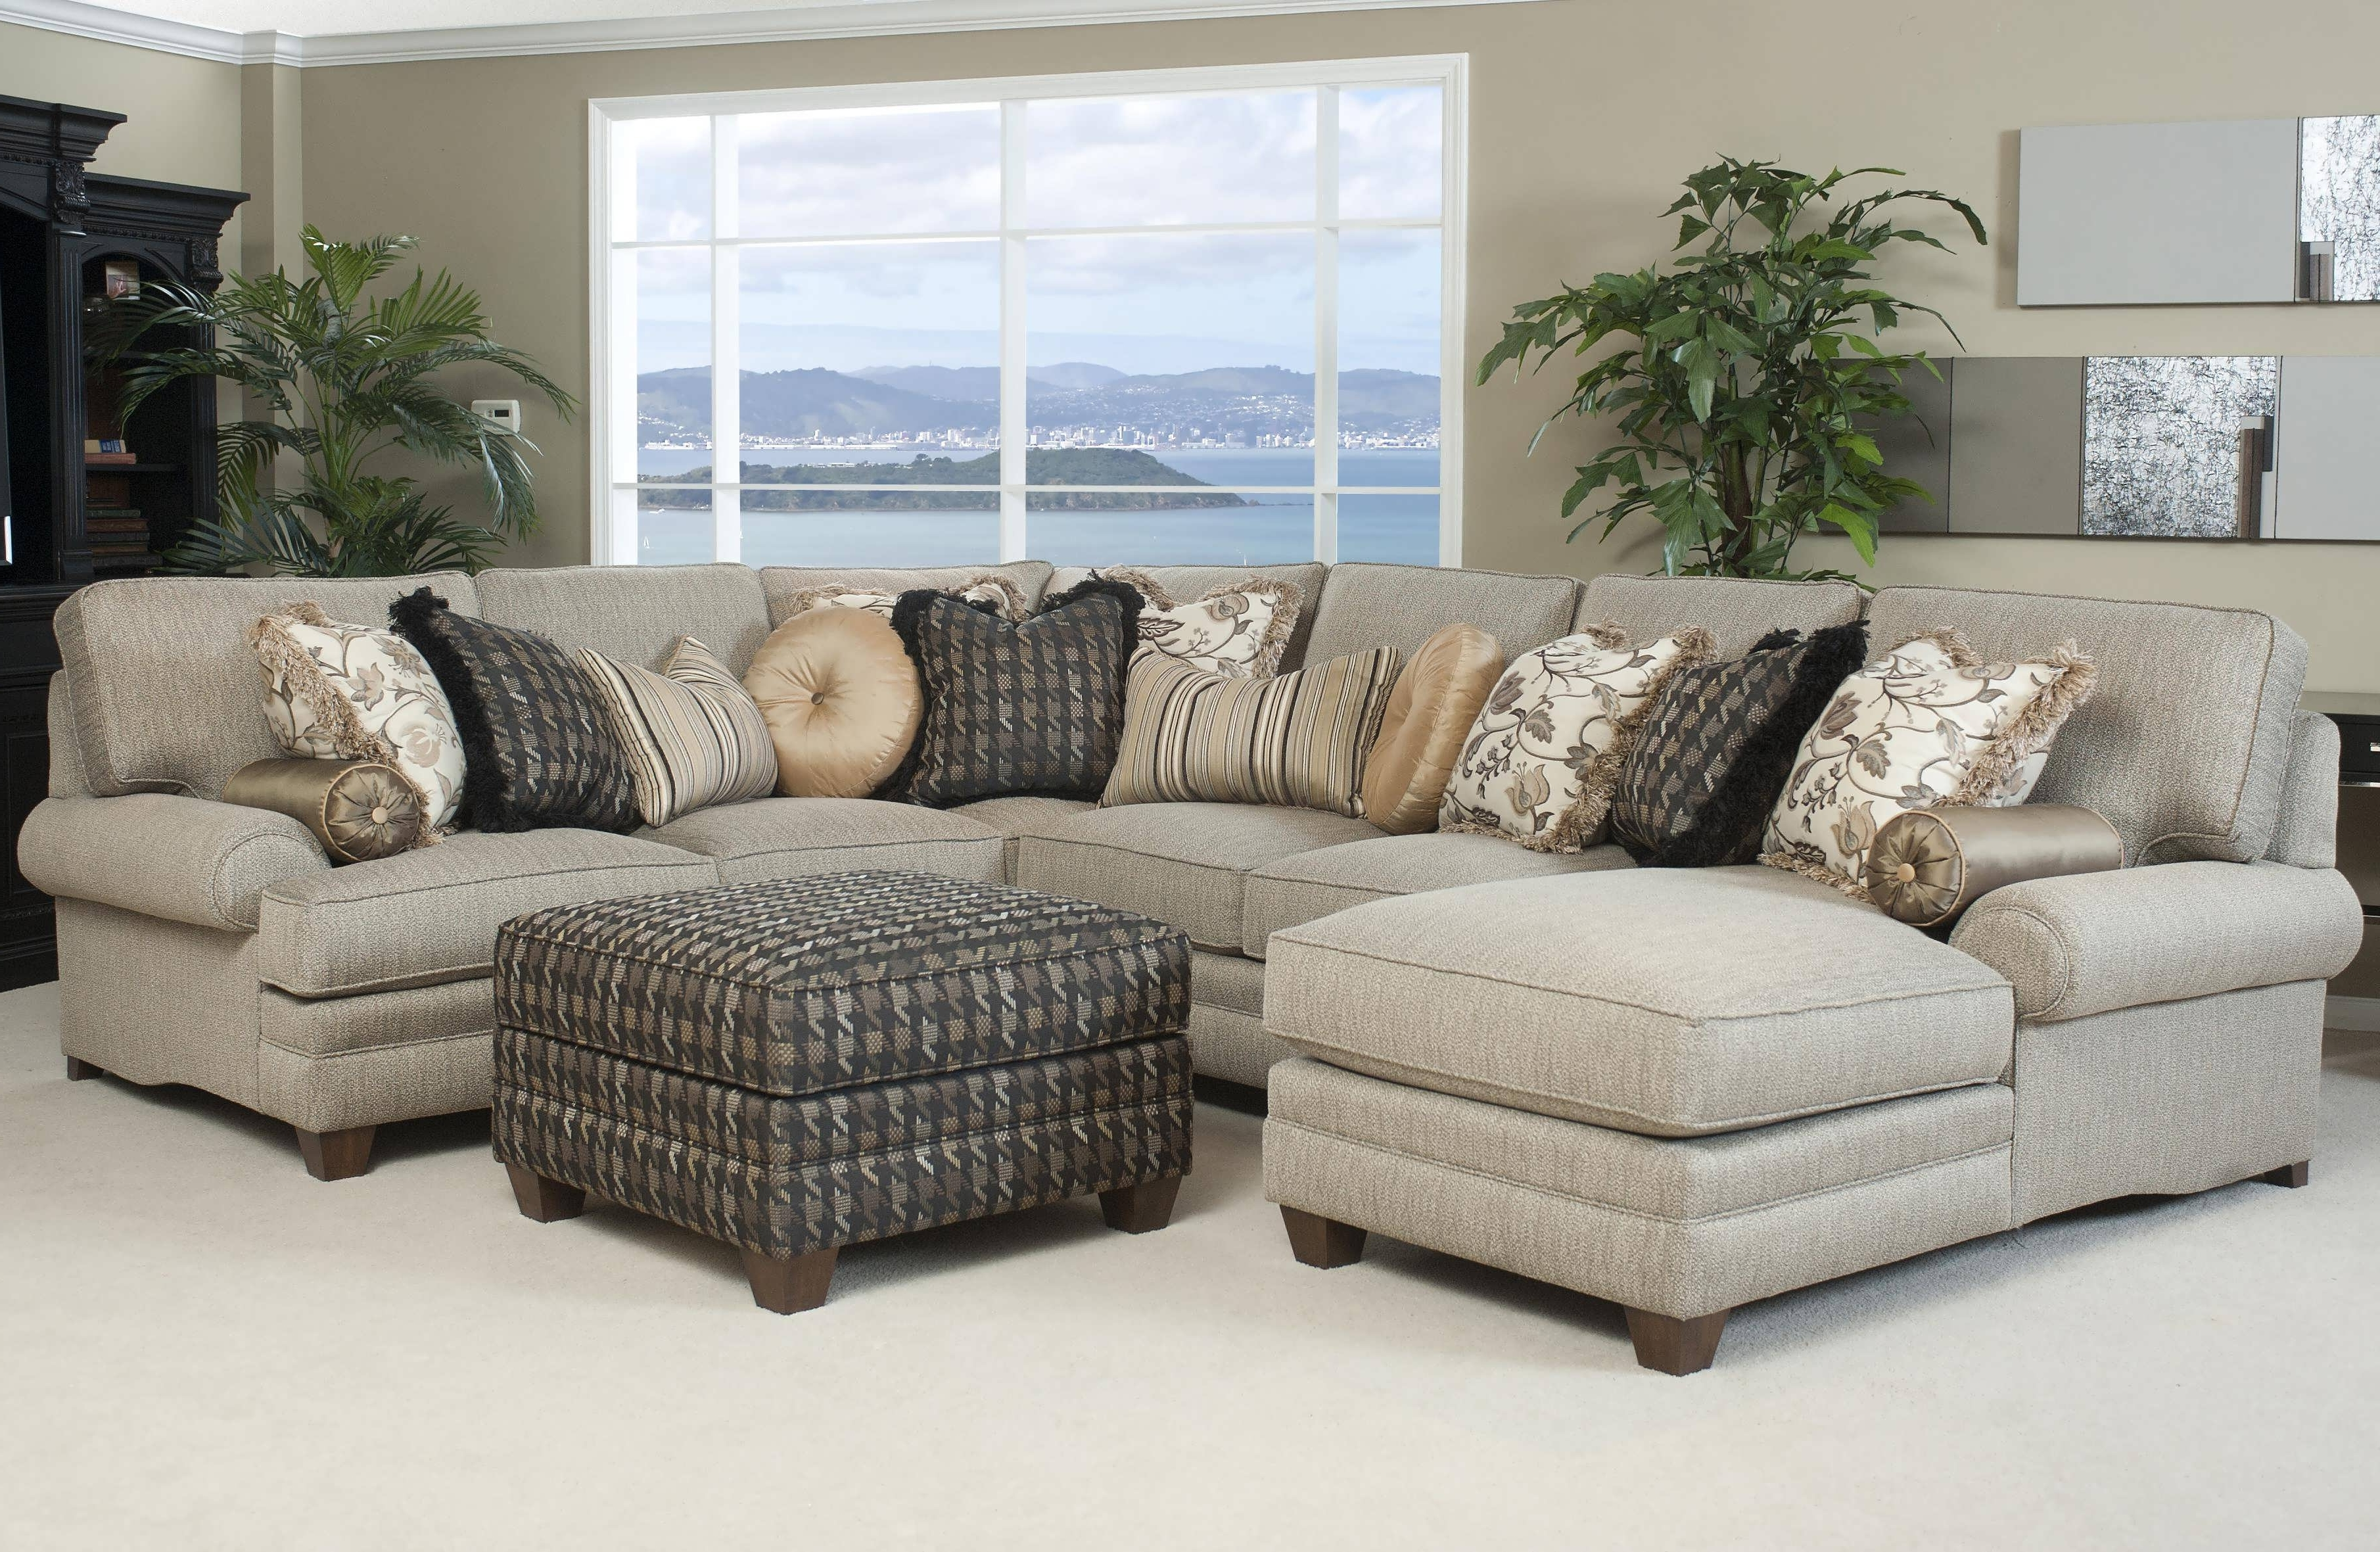 Fashionable Extra Large Sectional Sofas With Chaise Intended For Sofa : Leather Sectional Couch Extra Large Sectional Sofas With (View 8 of 15)